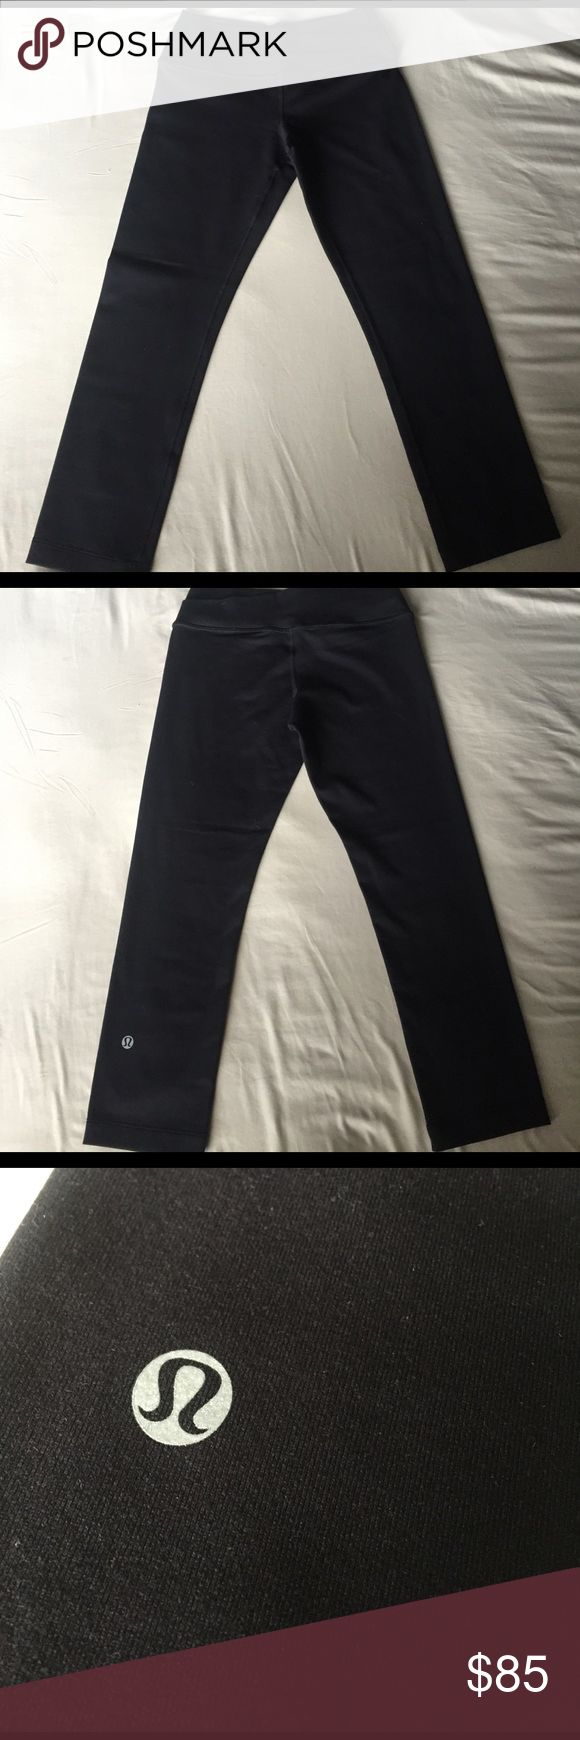 Lululemon Capri Leggings These are in brand NEW condition! The only thing missing is the tag. Love the color and feel but need to sell all of my Lululemon. All in brand new condition, need the money. Will sell FAST! Please NO TRADES. lululemon athletica Pants Leggings